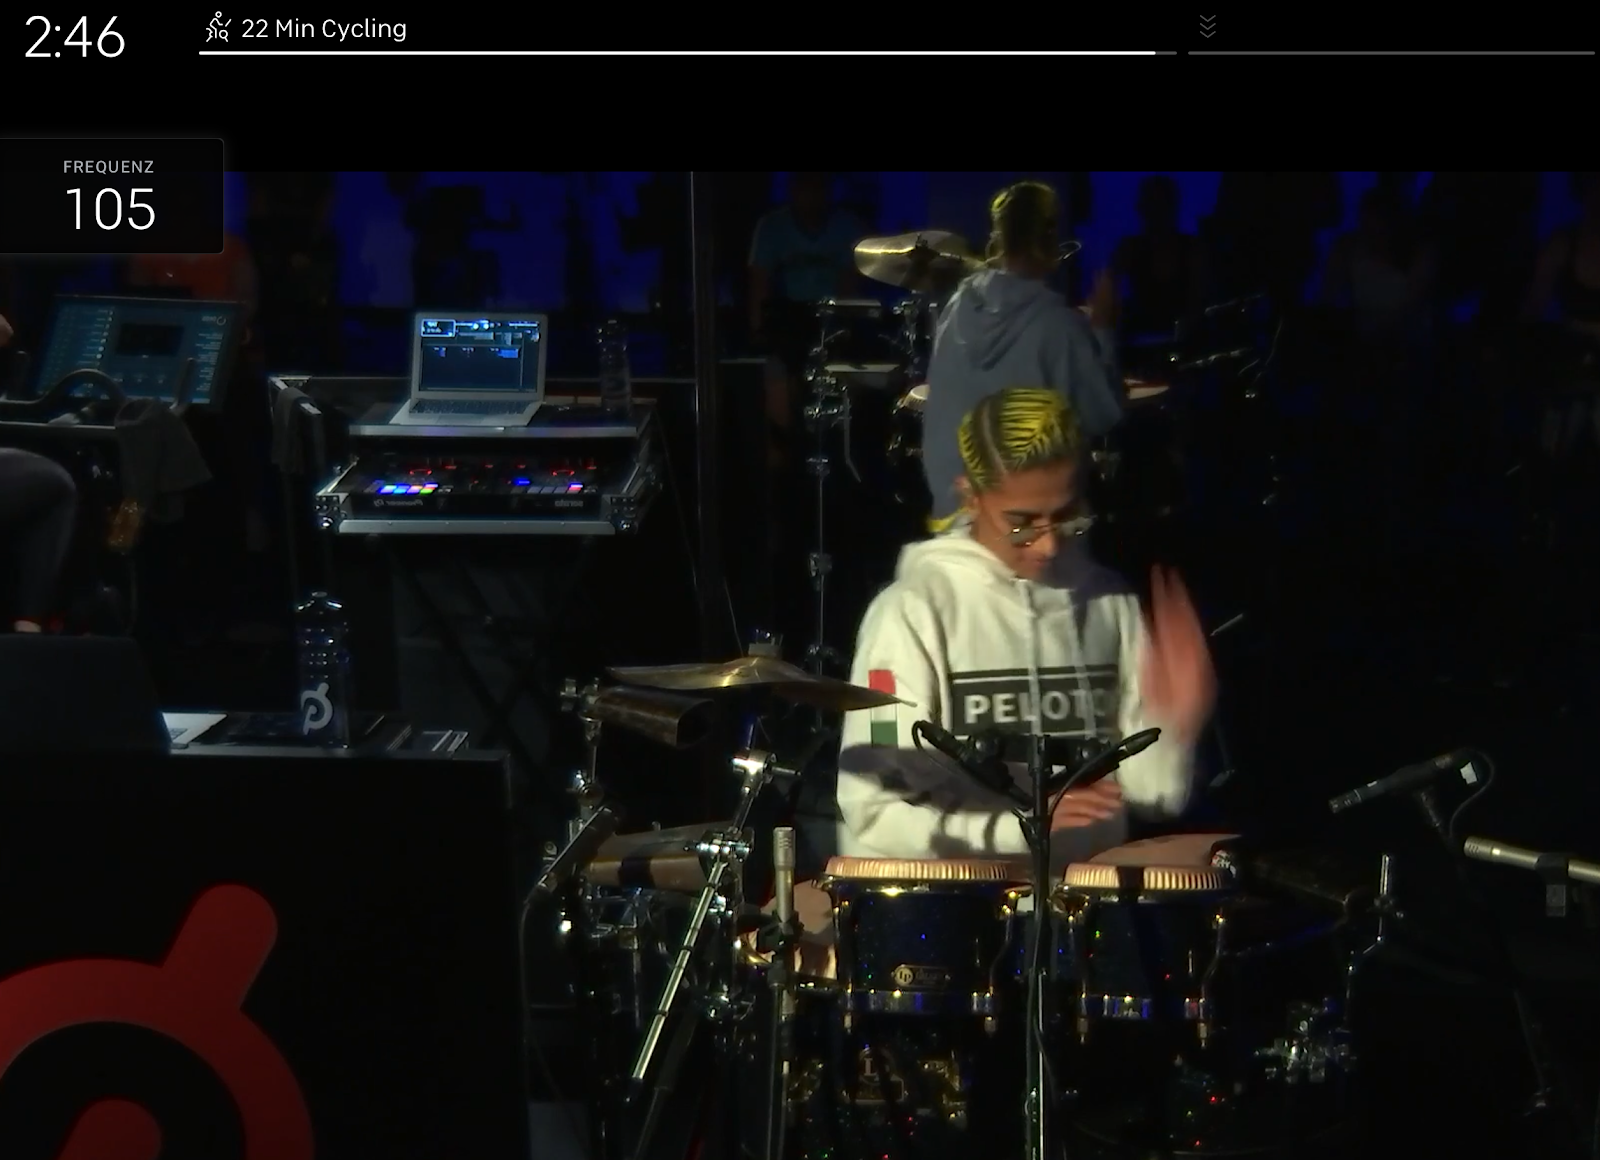 Peloton Tablet view live percussion while cycling